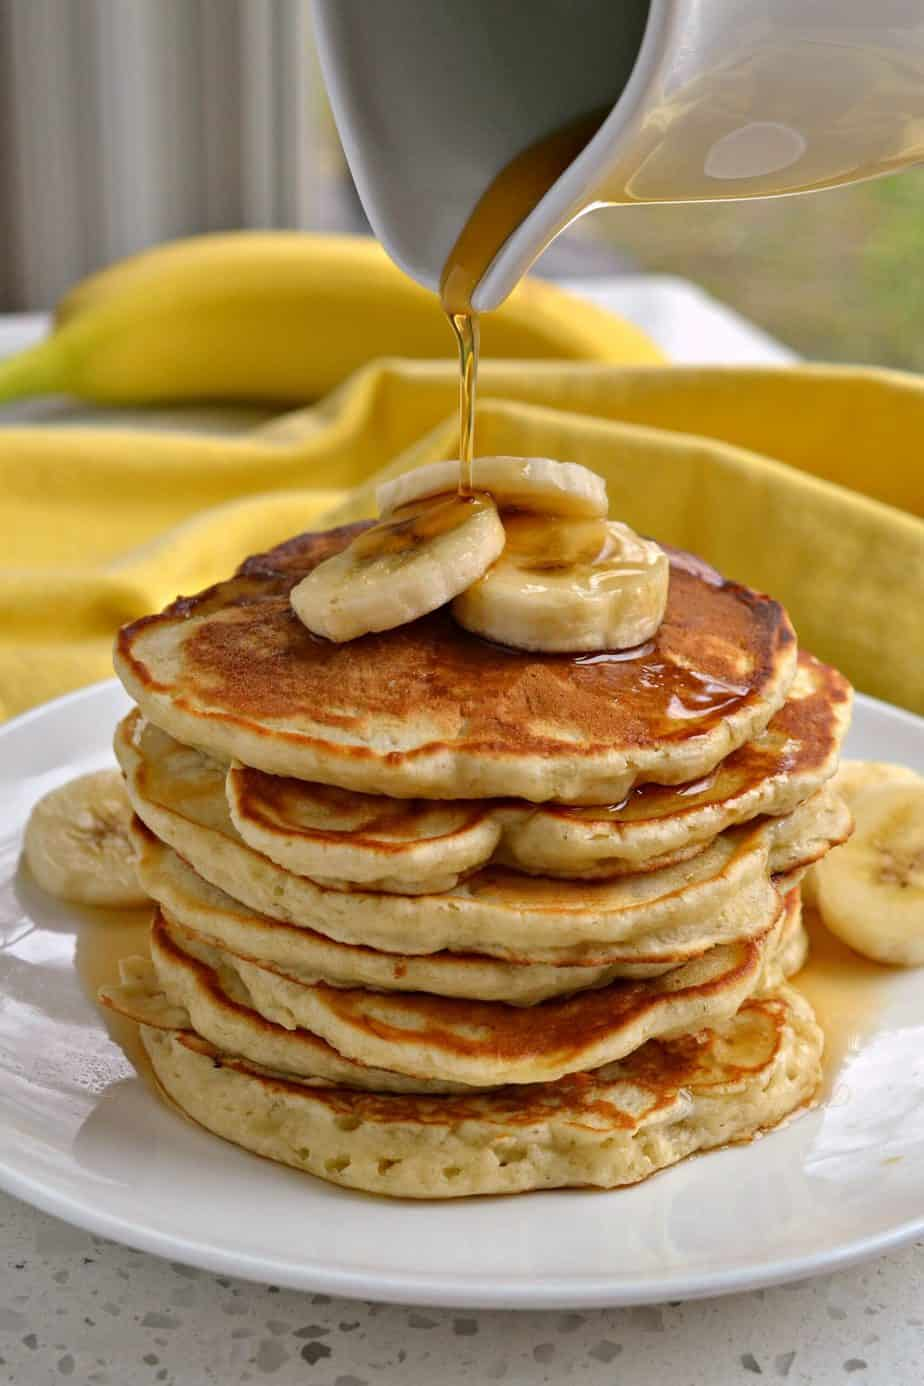 Banana Pancakes are a fantastic way to get that moist banana bread flavor in easy to make small portioned pancakes.